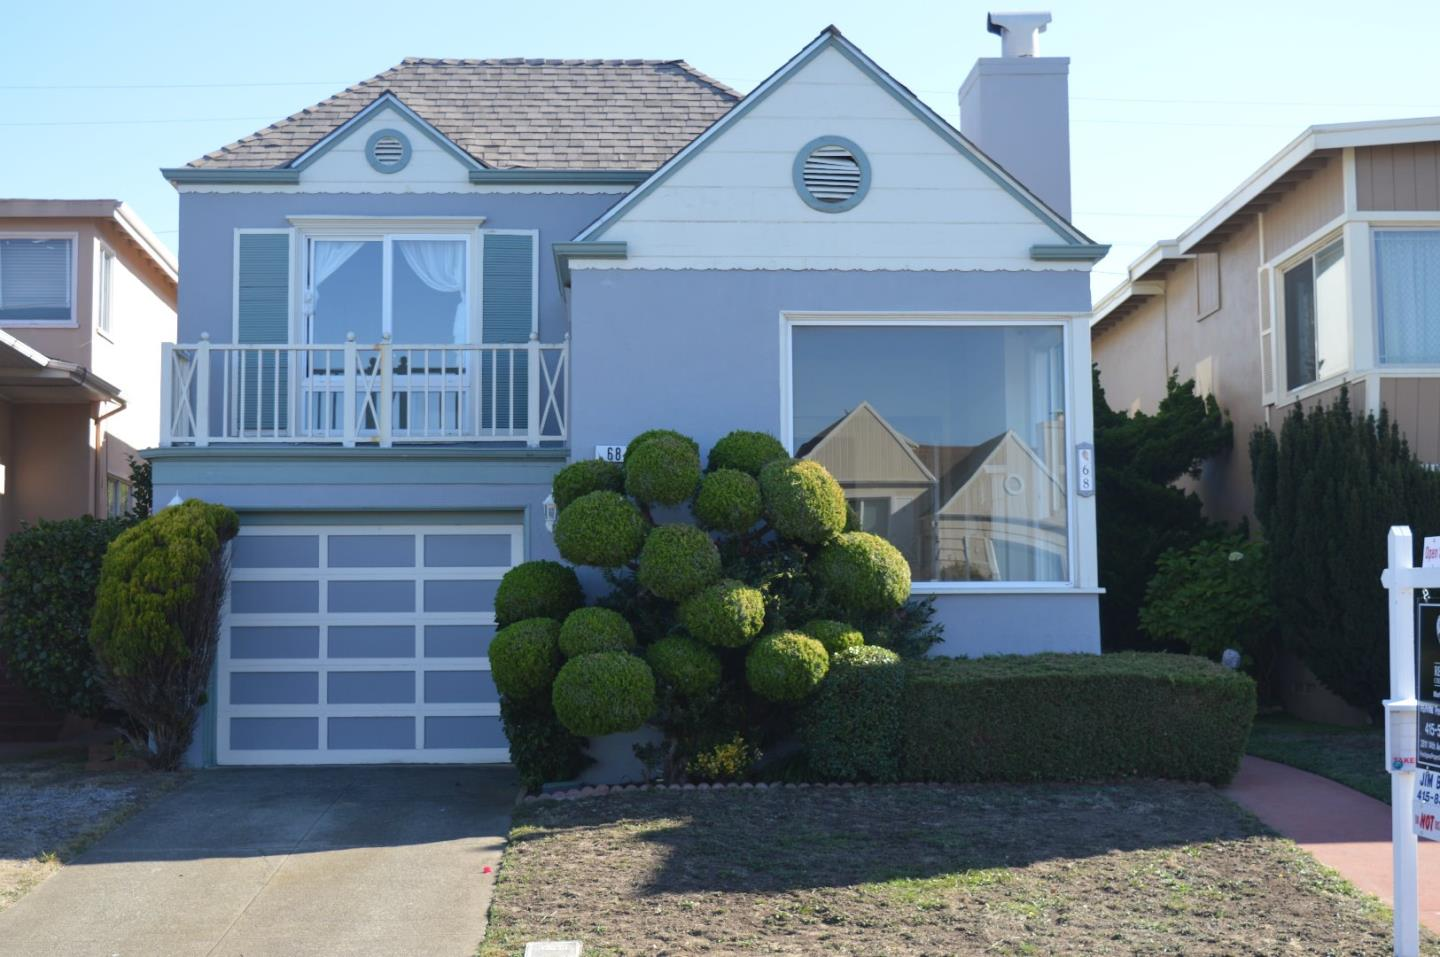 68 Belmont Drive, Daly City, CA, 94015 - SOLD LISTING, MLS ...